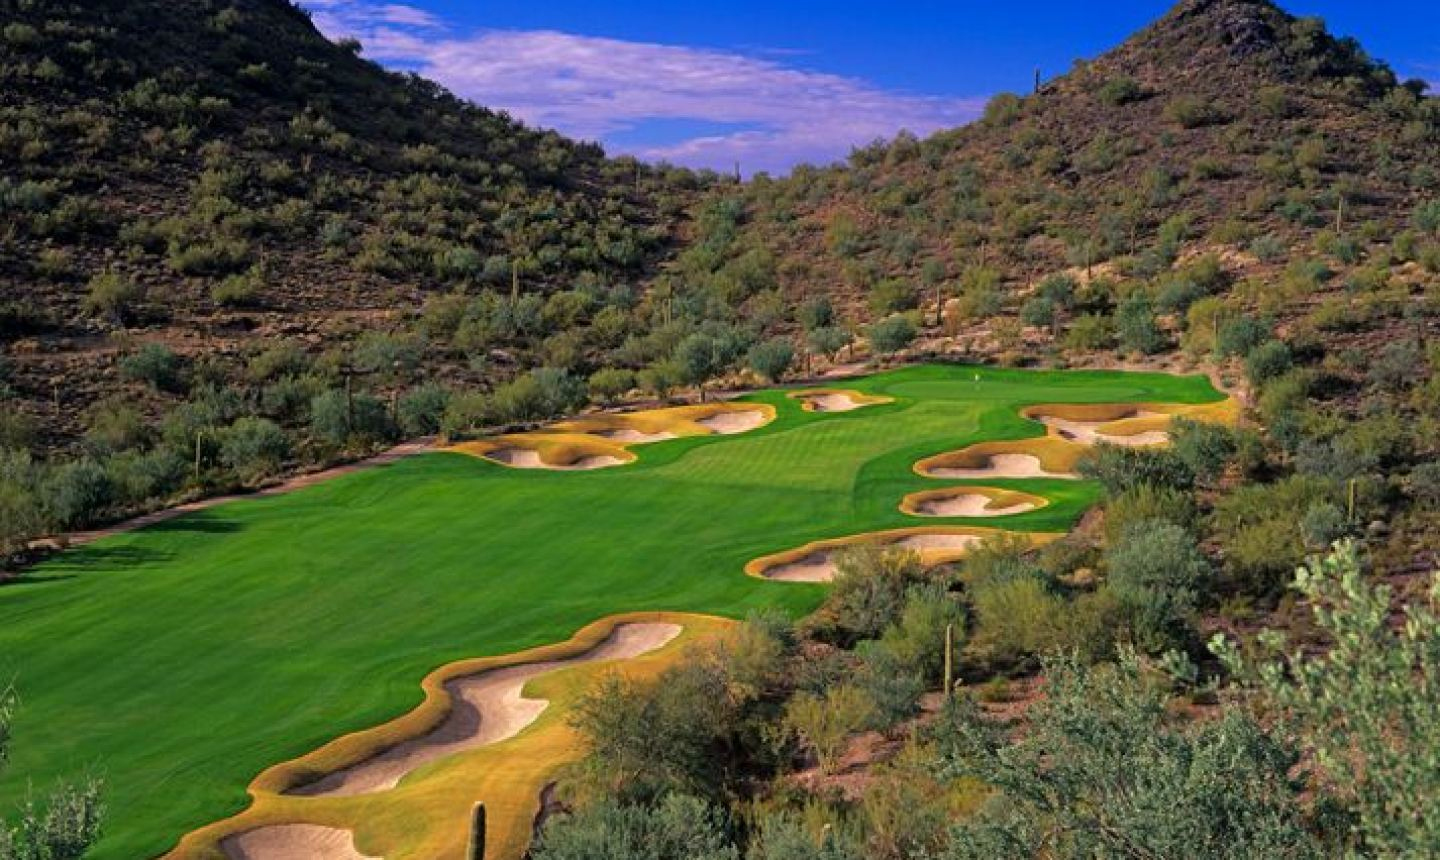 Quintero golf club, Phoenix, Arizona